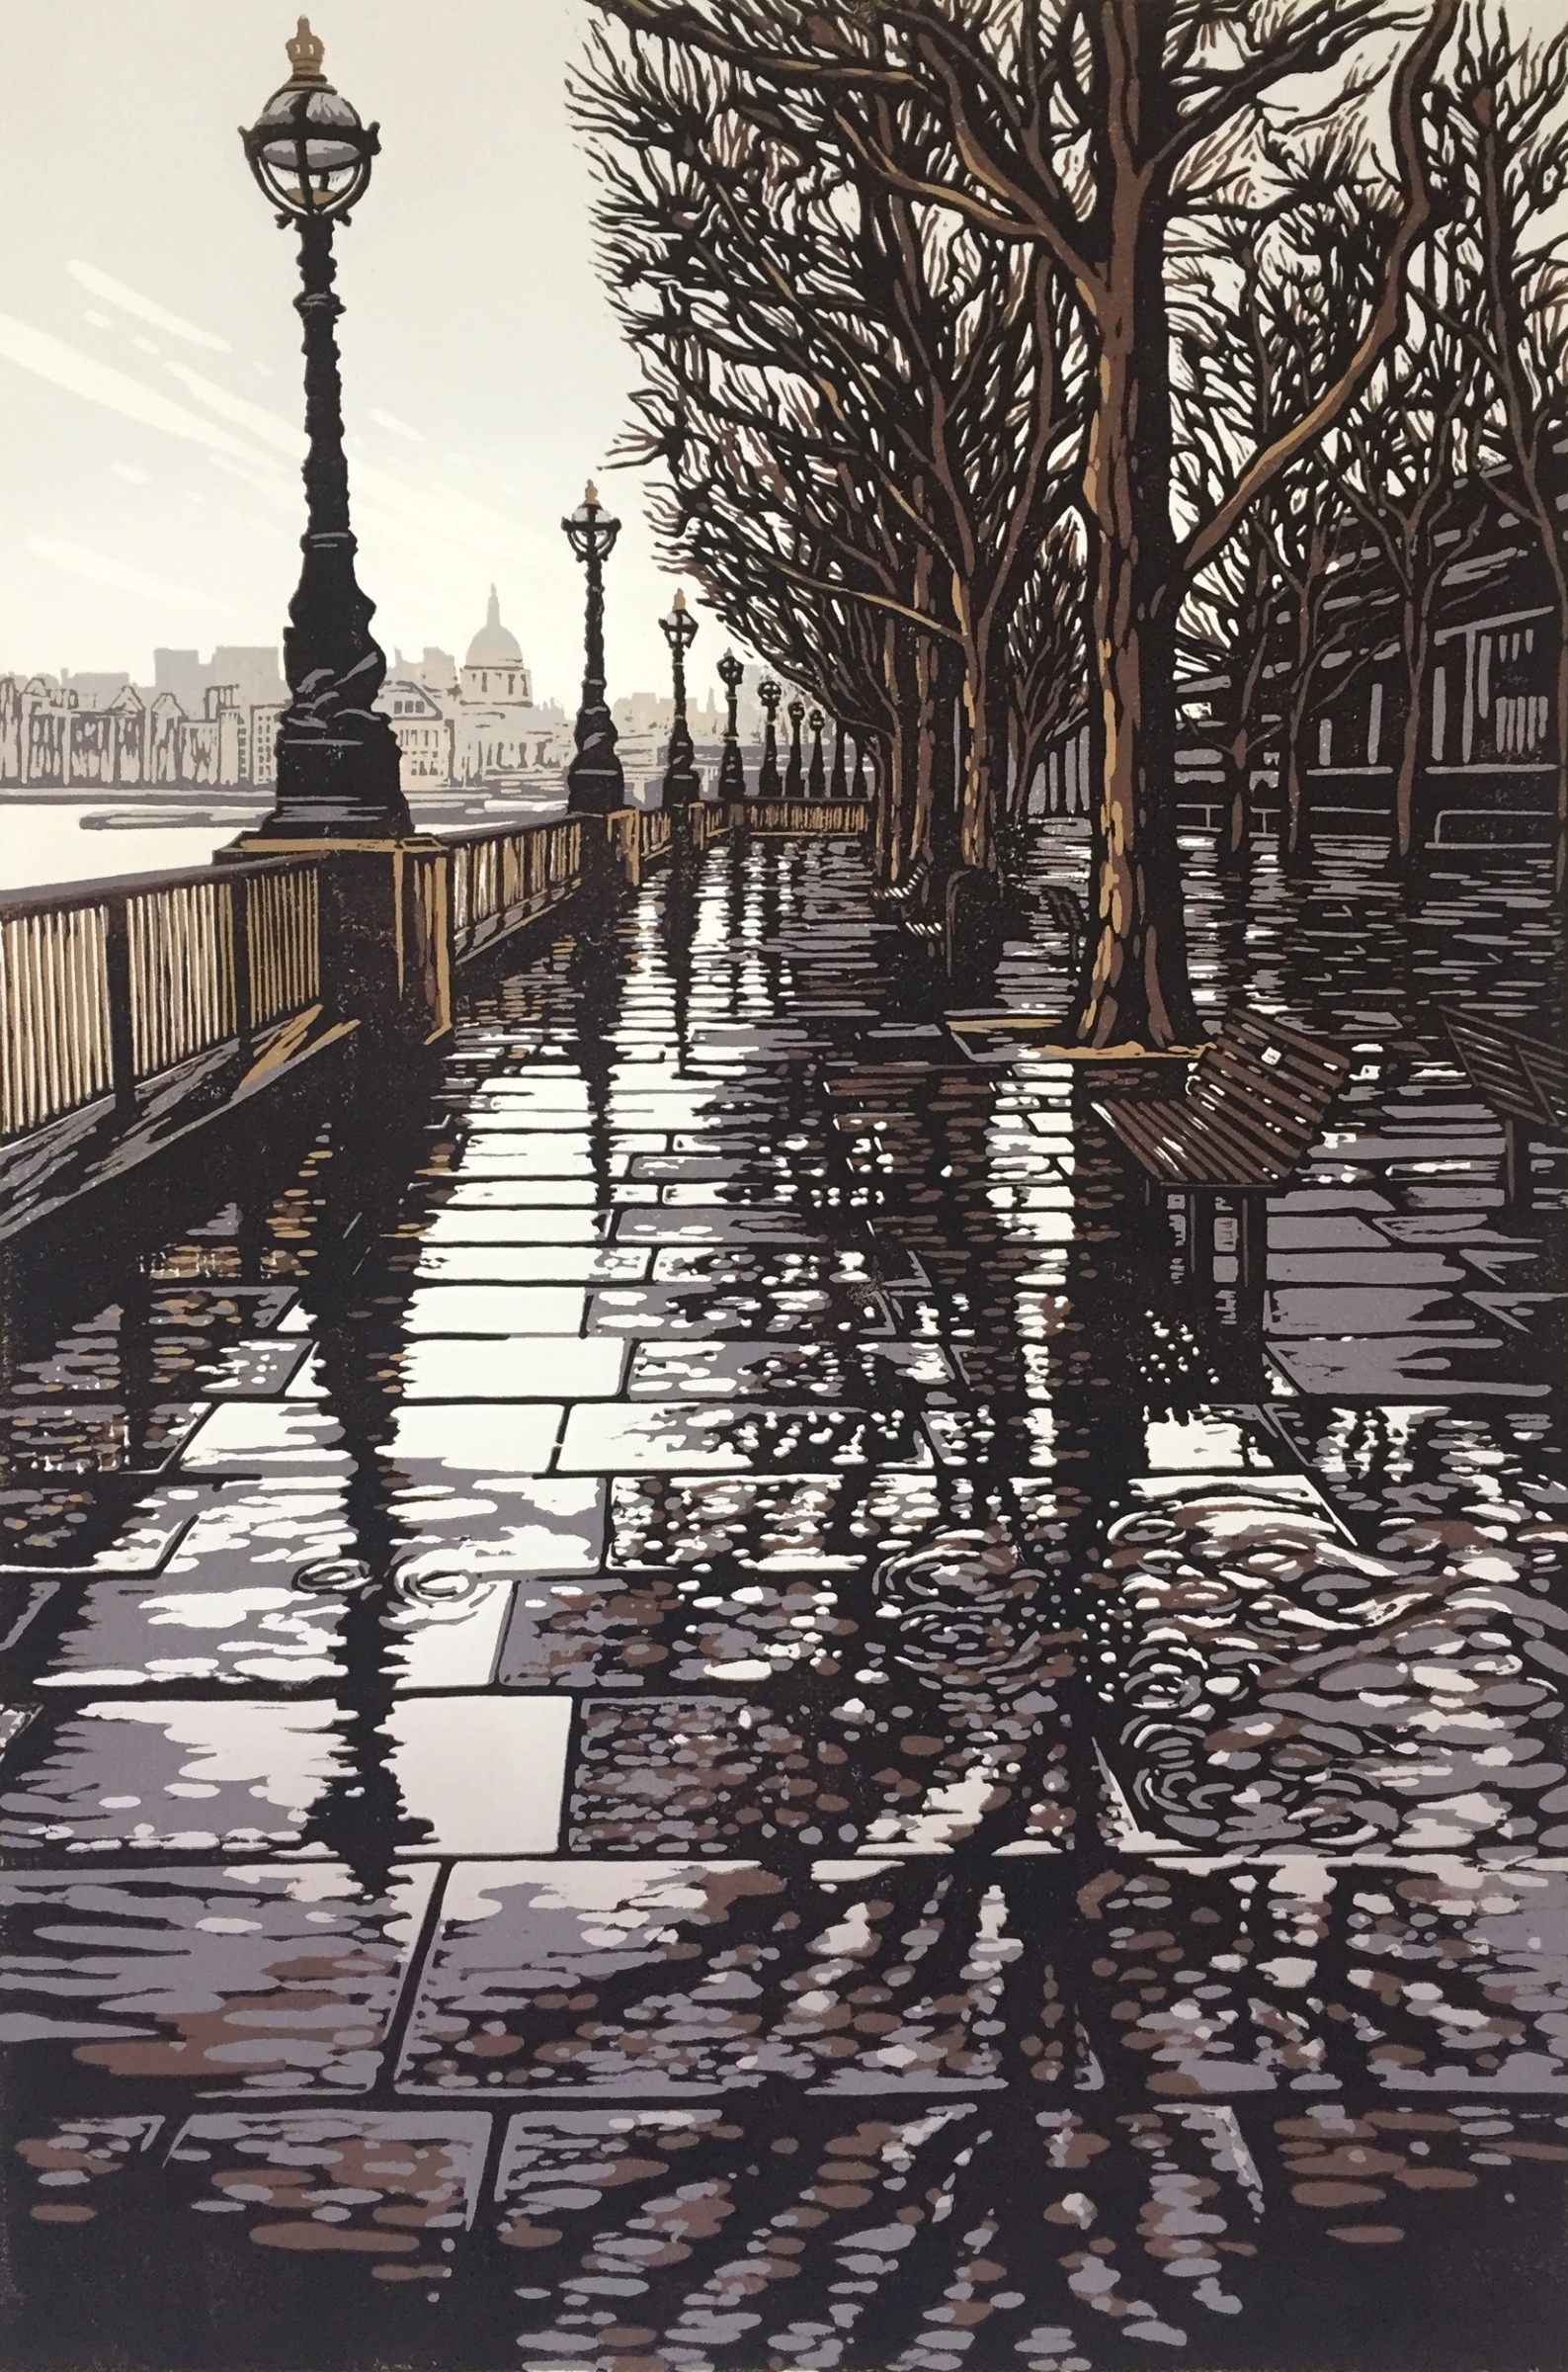 "<span class=""link fancybox-details-link""><a href=""/exhibitions/18/works/image_standalone974/"">View Detail Page</a></span><p>Alexandra Buckle</p><p>Southbank Puddles</p><p>linocut</p><p>74 x 54cm</p><p>£675 framed</p><p>£580 unframed</p>"